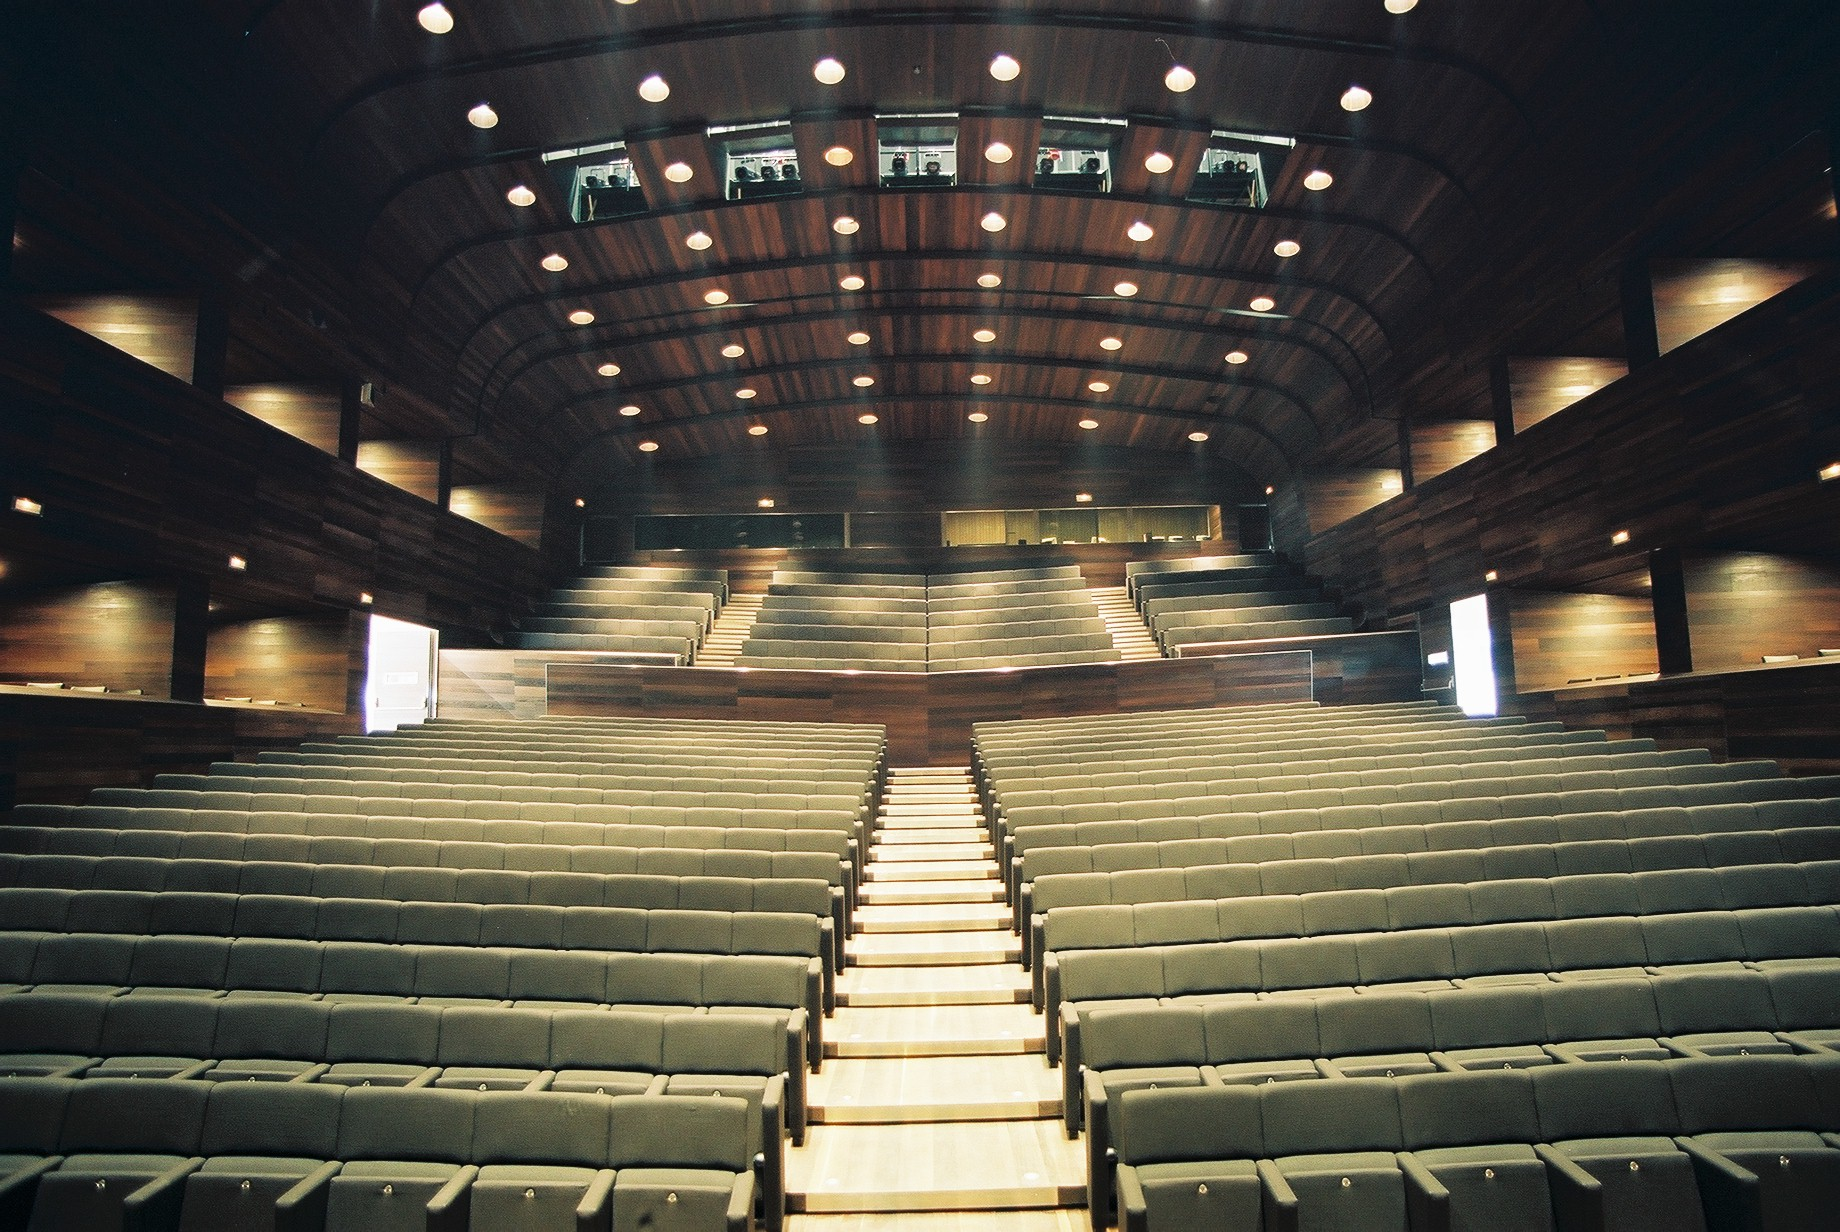 Concert Hall from the stage